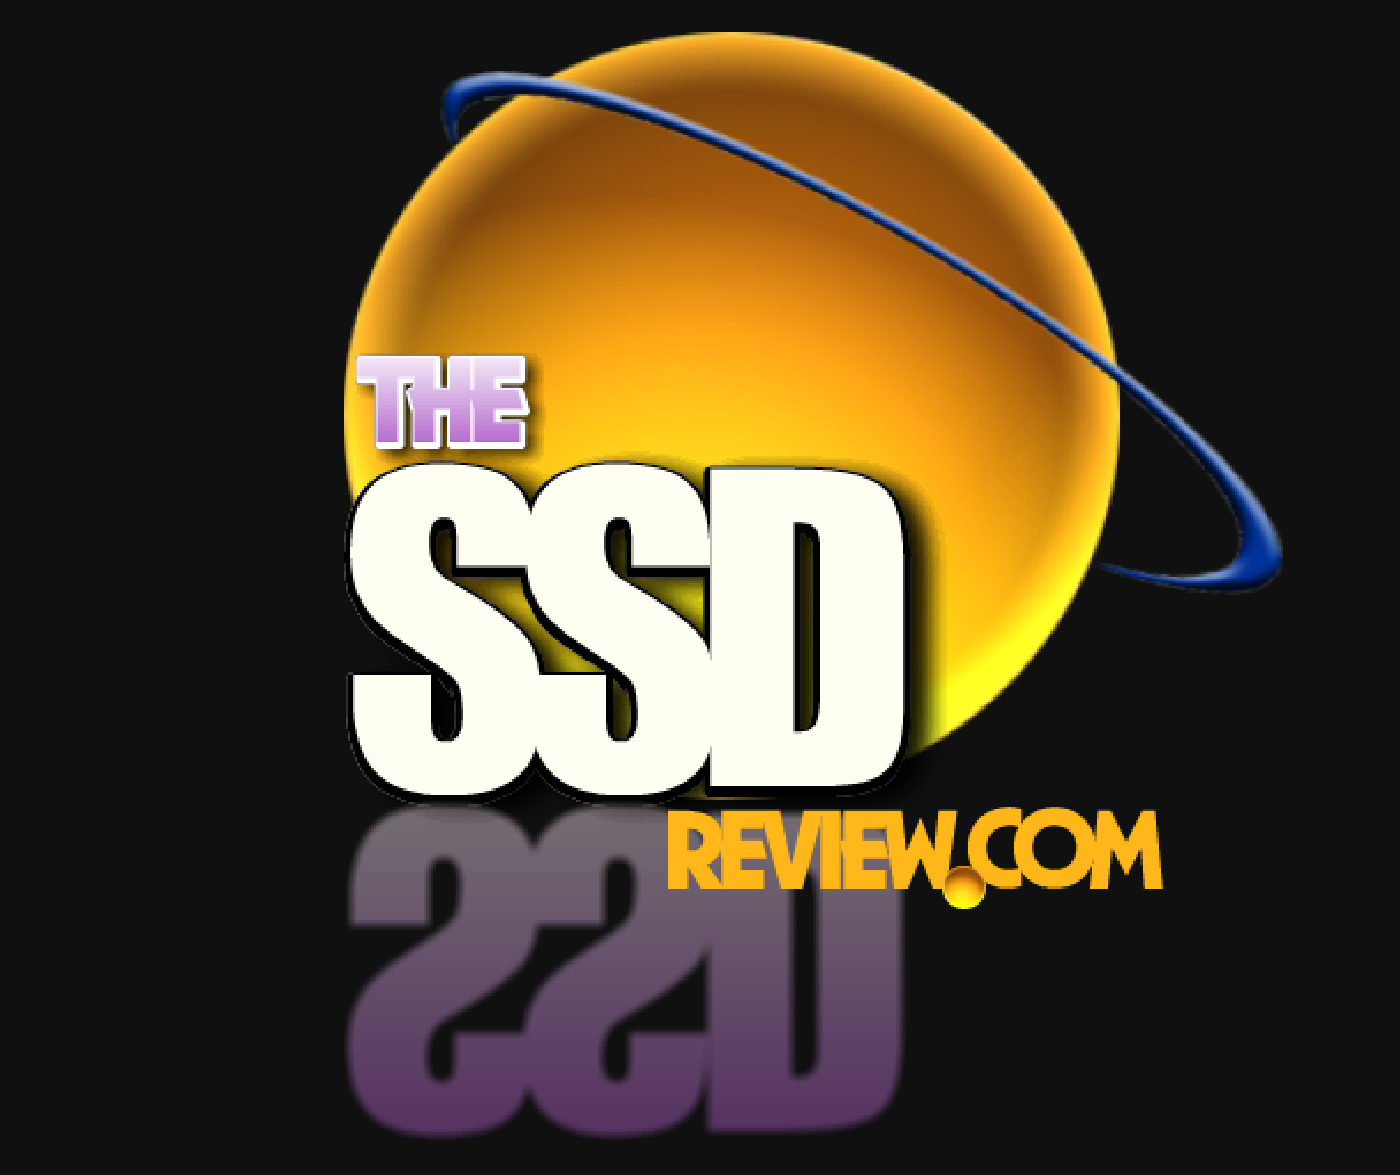 Category: Enterprise | The SSD Review